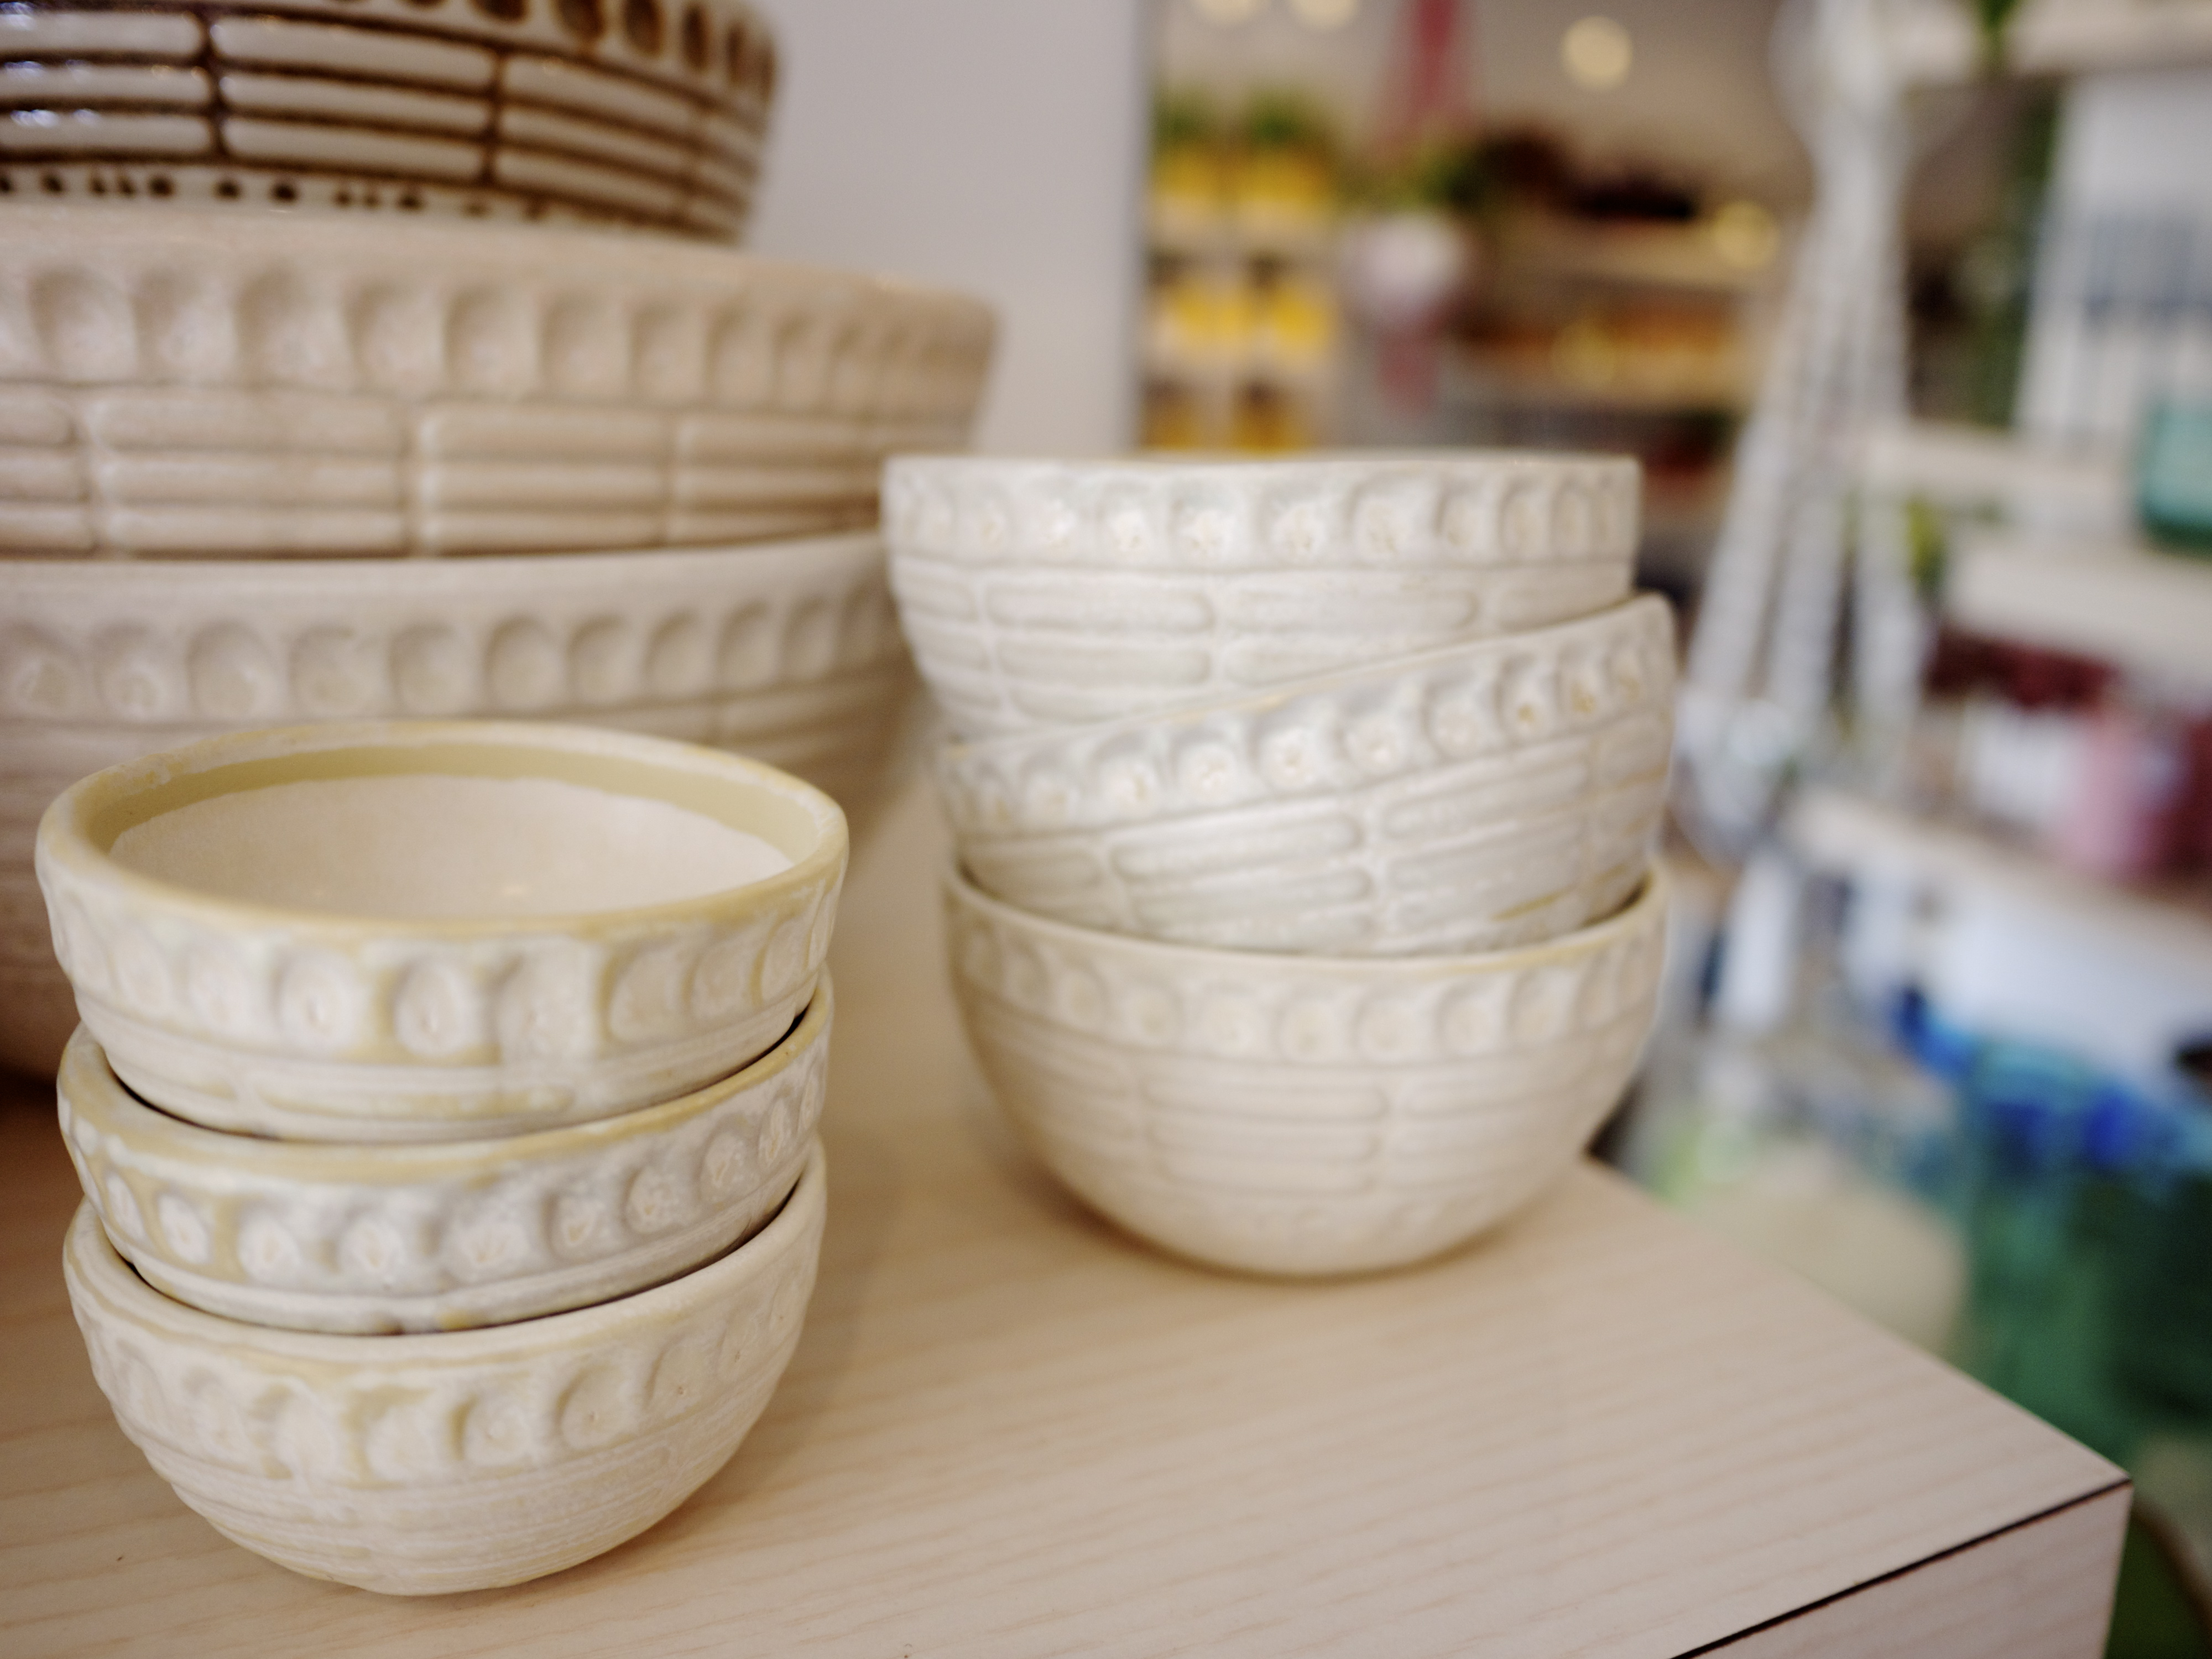 Terrace Outdoor Living - Small White Bowls